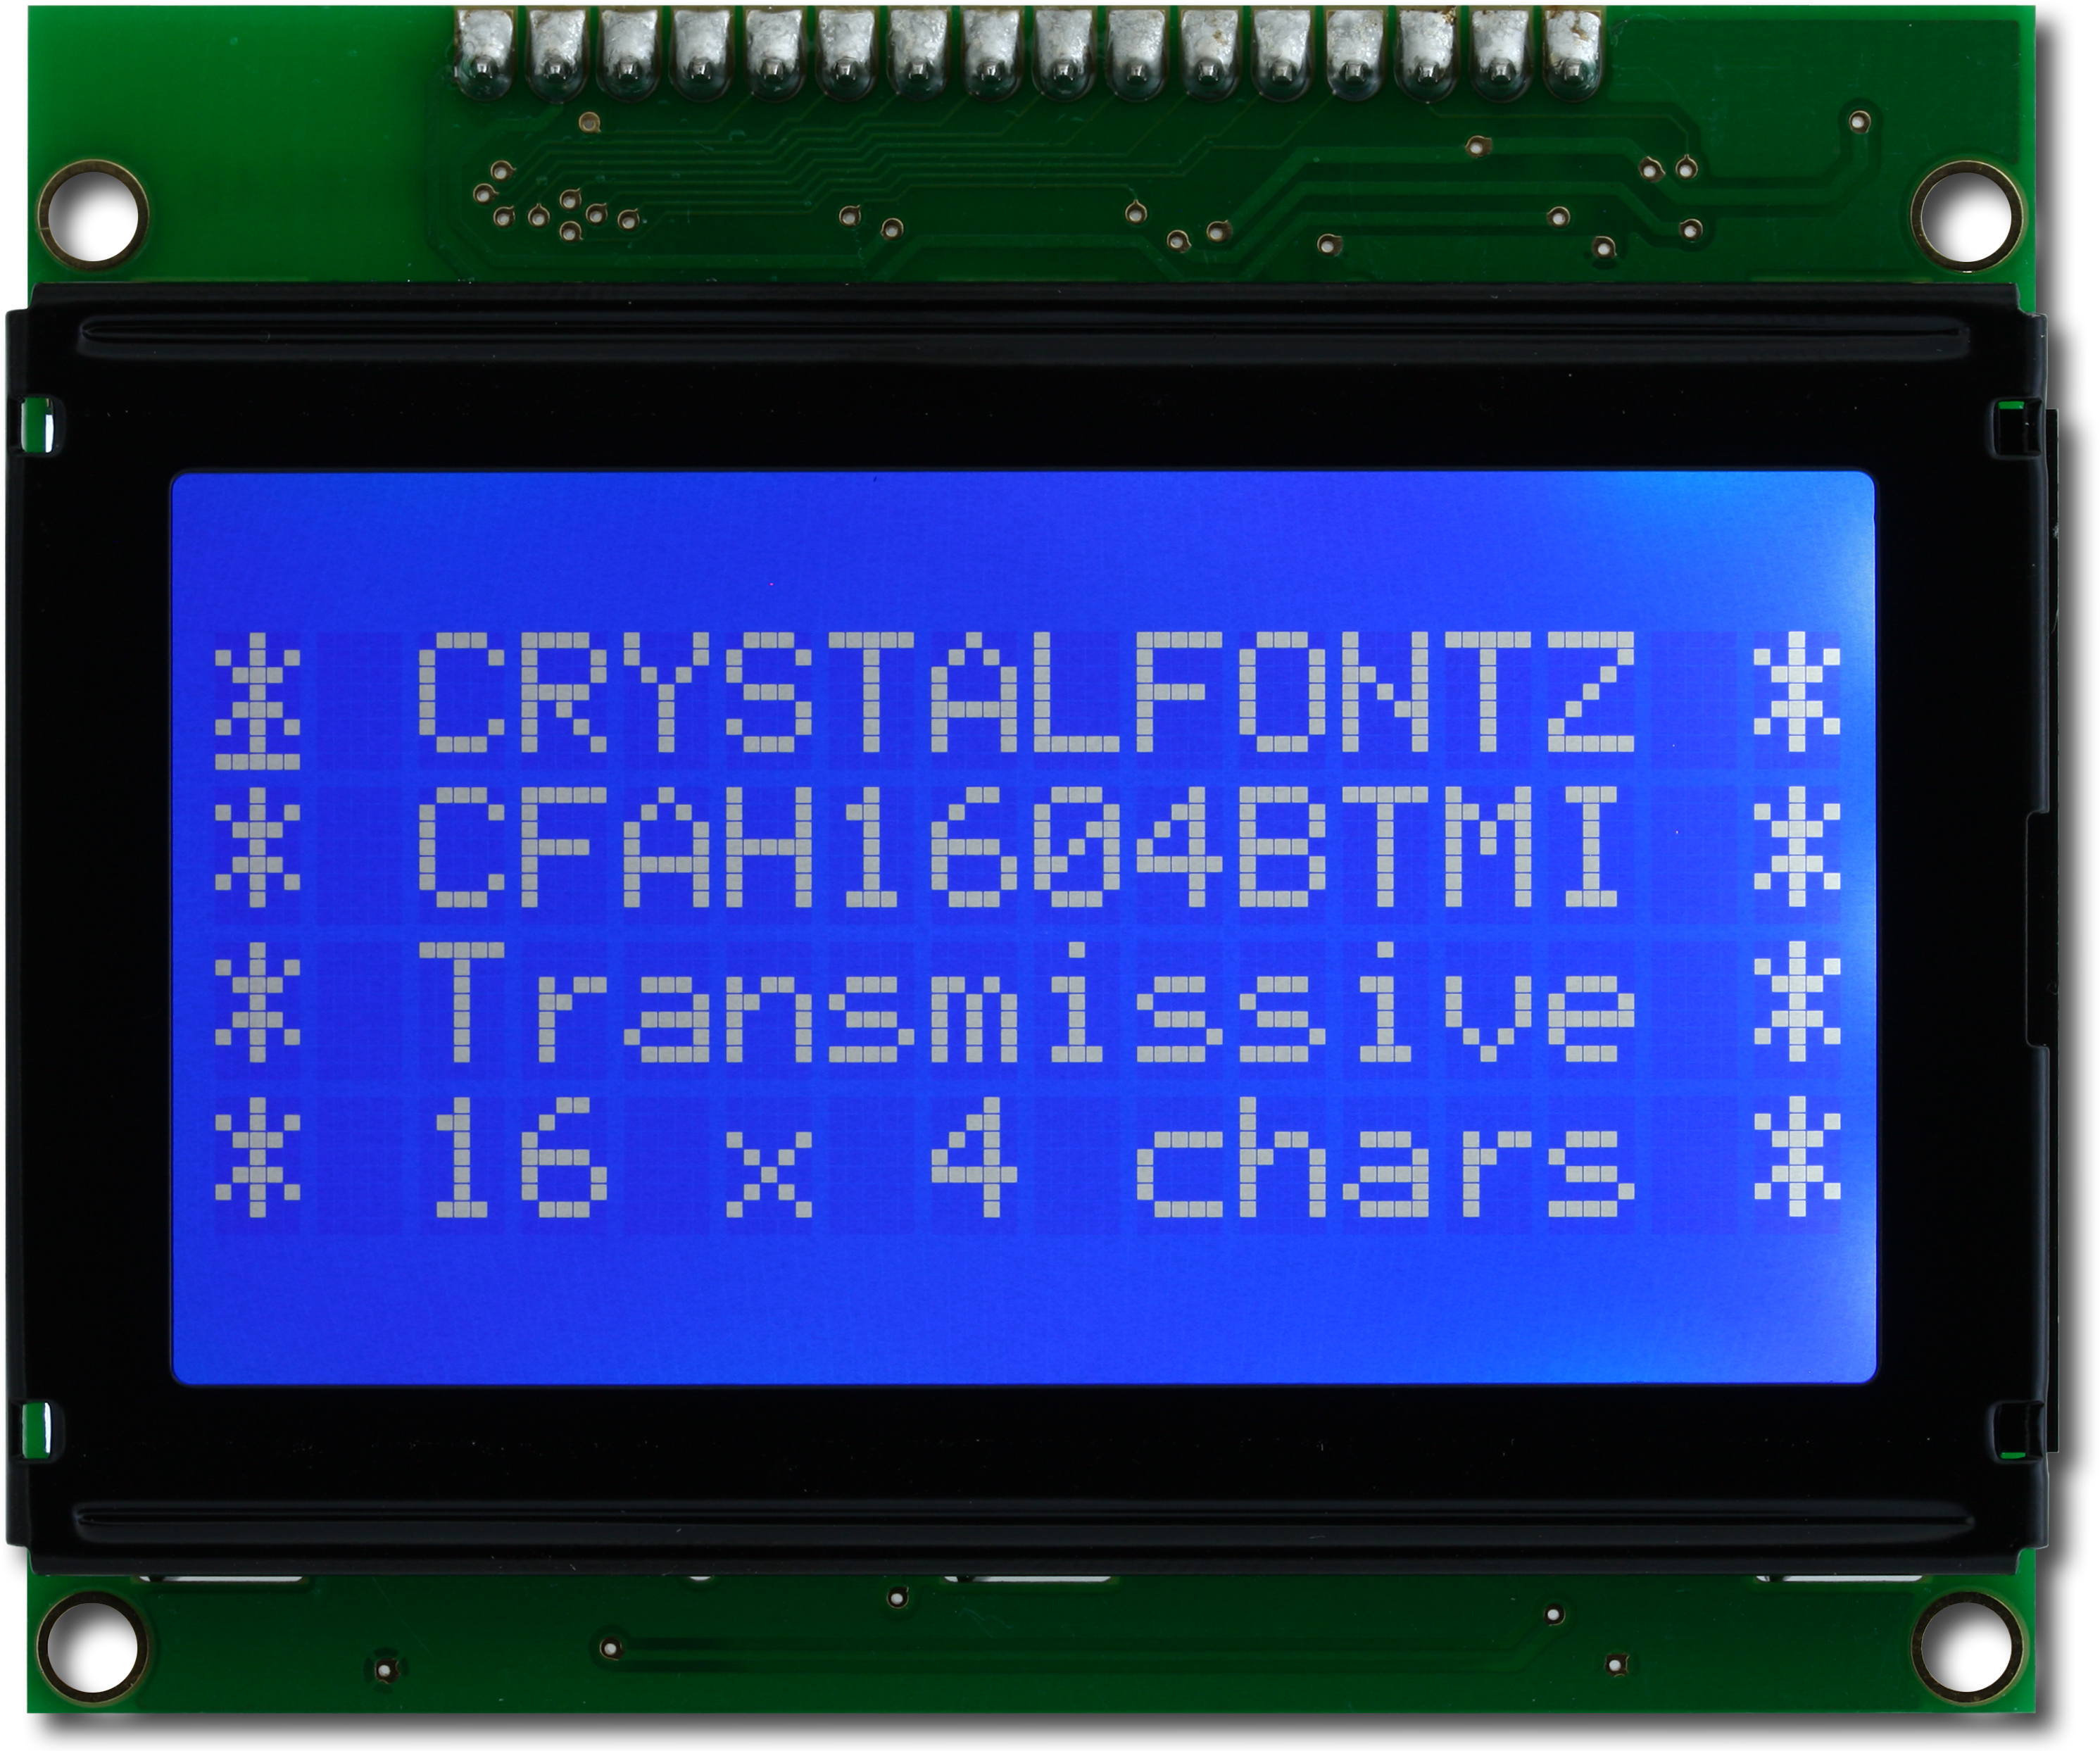 Cfa533yyhks Rs232 Character 16x2 Lcd in addition Fdu80 also Arduino Lcd Interfacing Tutorial likewise Cfah0801zyyhjp Character Display 8x1 Lcd likewise Ascii Lookup Table. on character lcd displays part 1